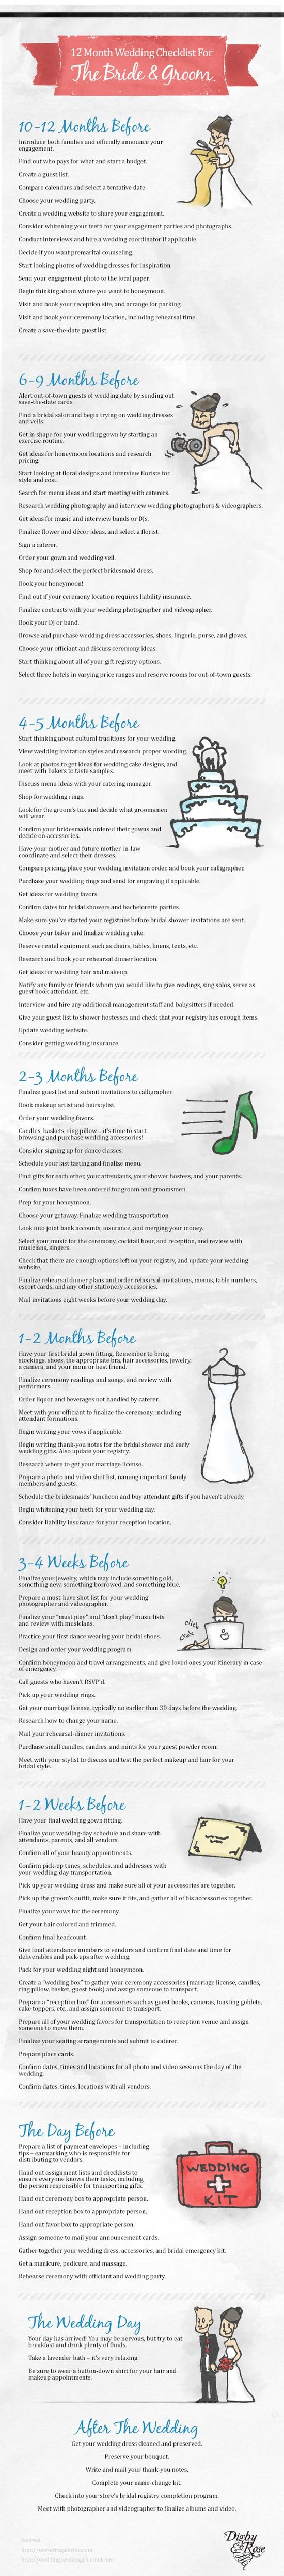 Complete wedding planning guide and checklist itemized by key monthly, weekly, and daily goals to help make your wedding planning less stressful.